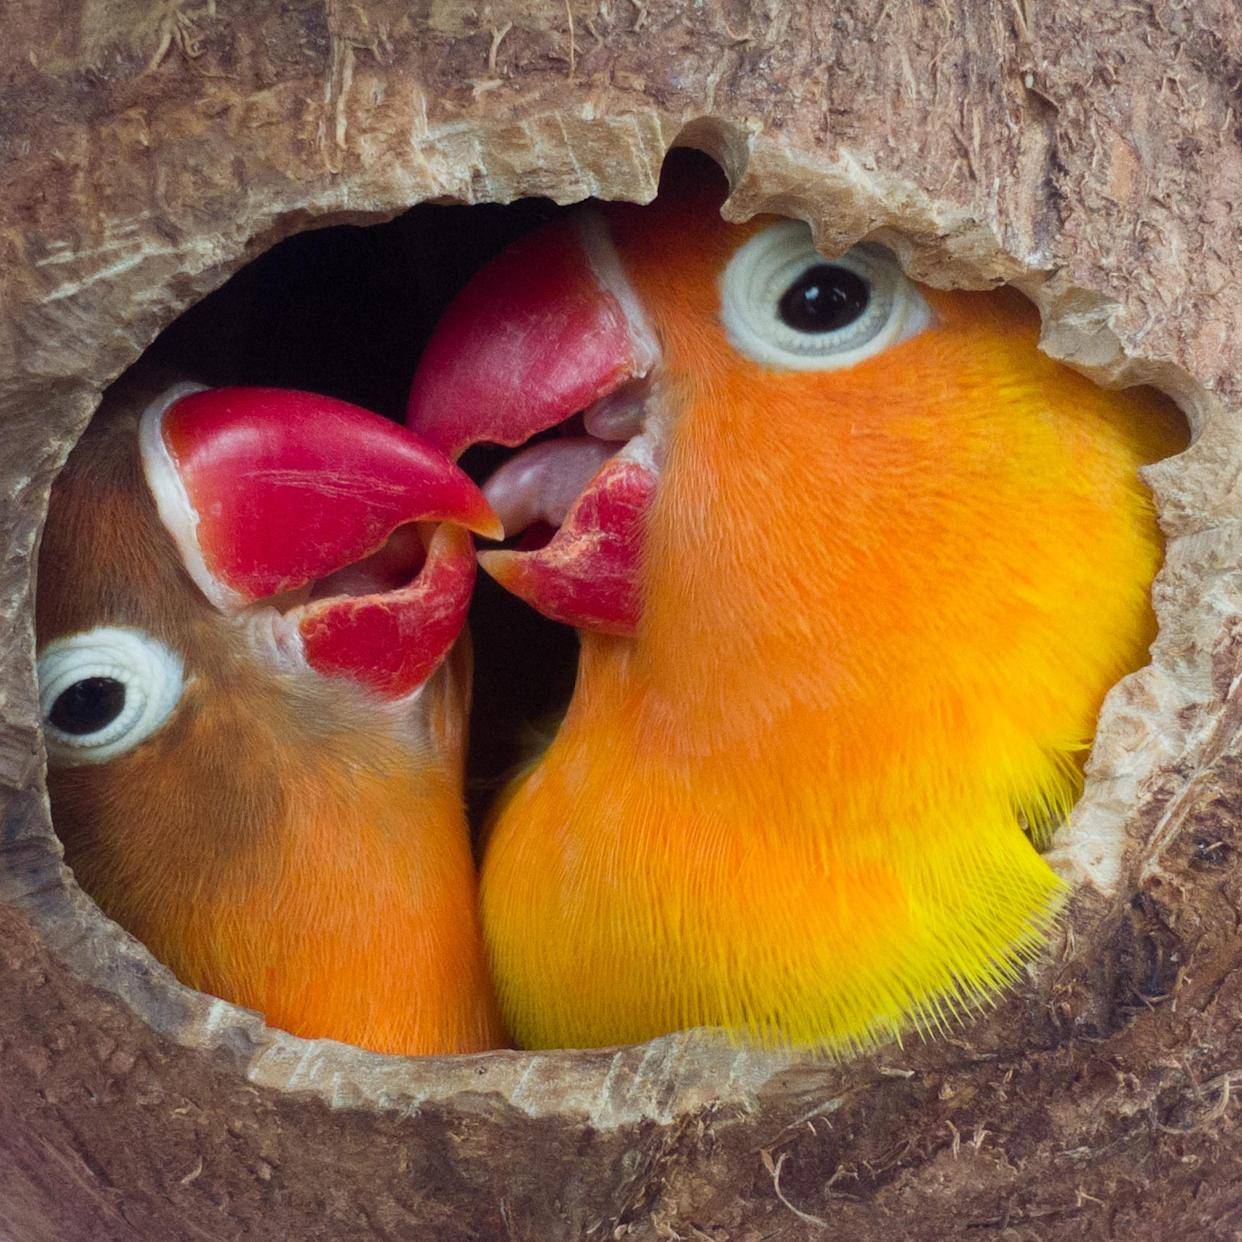 two lovebirds are in a nest made of coconut shells